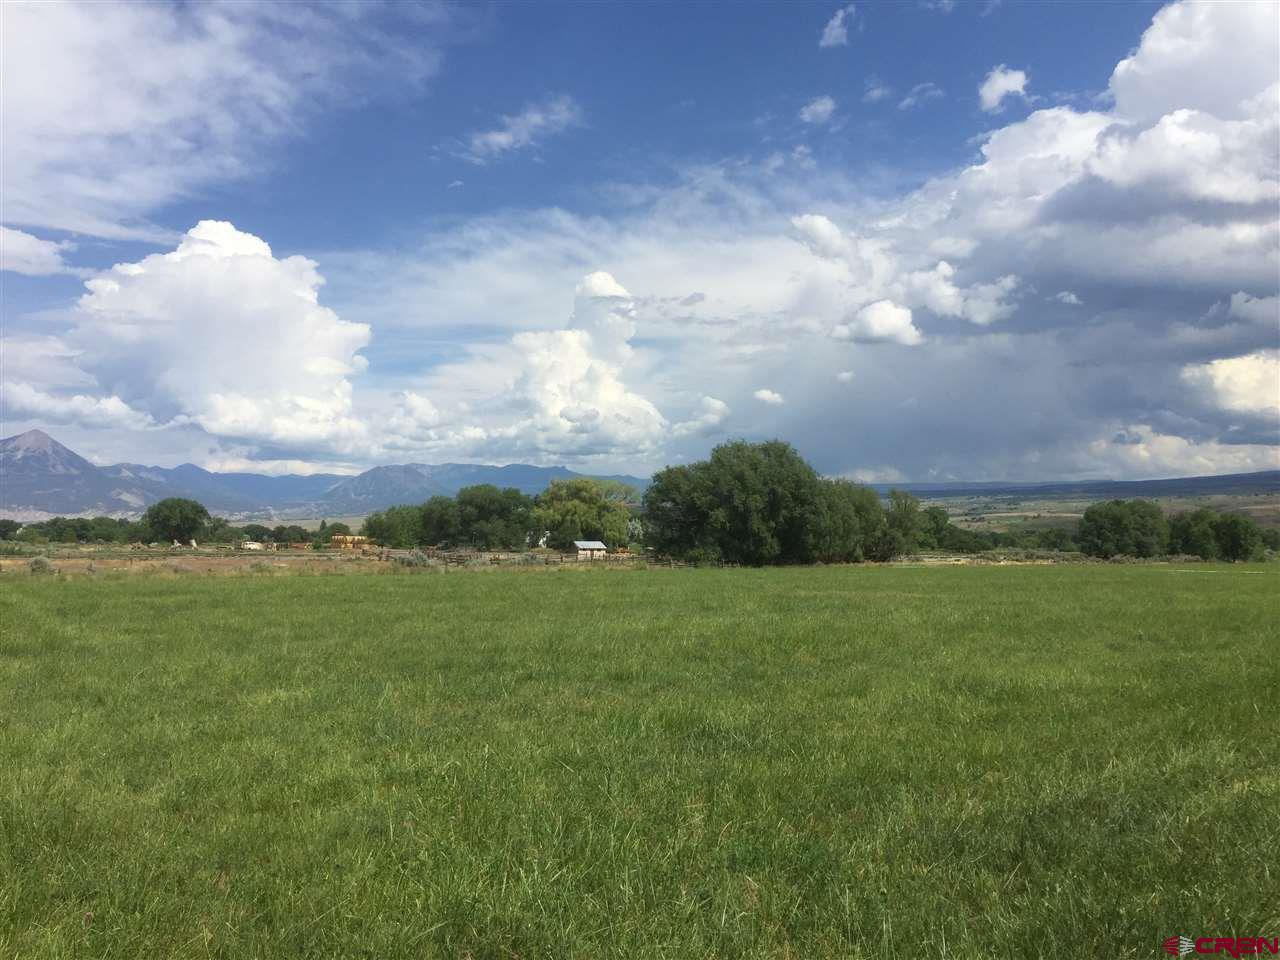 Are you looking for that special farm/ranch with great irrigation? 72.5+/- Acres on the fertile soils of Rogers Mesa near Hotchkiss, Colorado. This property has been a cattle ranch with hay production and pasture for summer, and fall into winter. There are approximately 46+/- acres of hay ground and 26+/- pasture. The location is ideal… in the country but near Hotchkiss about 4 miles away on Rogers Mesa. Also included is one Rogers Mesa Domestic Water Tap and several great building sites of J Road. Utilities including natural gas is on J Road. Really good irrigation water from Fire Mountain Canal & Reservoir. 1830 Shares. (This acreage is in final stages of being divided and will require final approval from the county.) Call agents to see the property... a drive by doesn't do it justice.